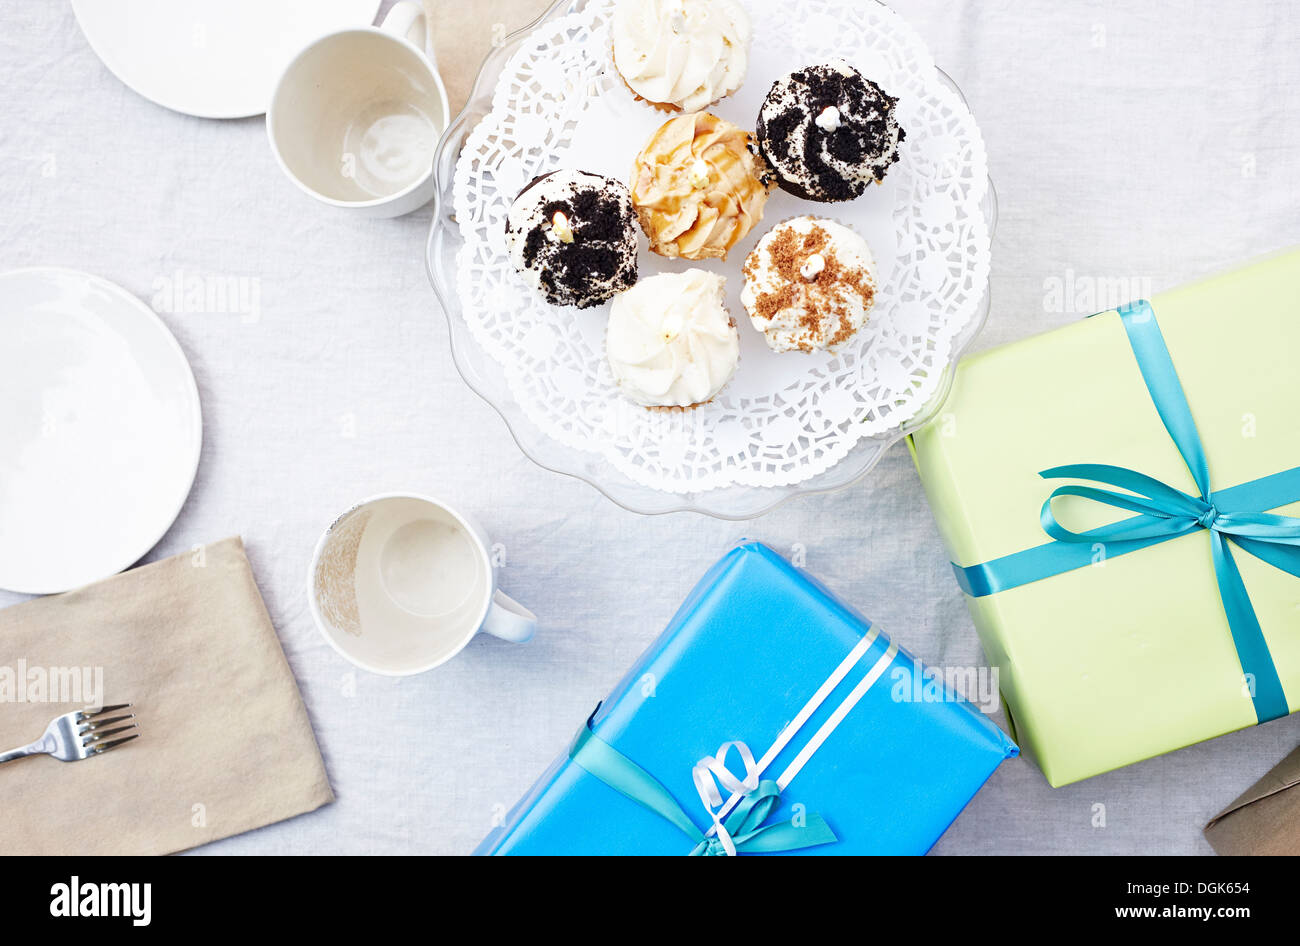 High level view of cupcakes, birthday presents and crockery - Stock Image